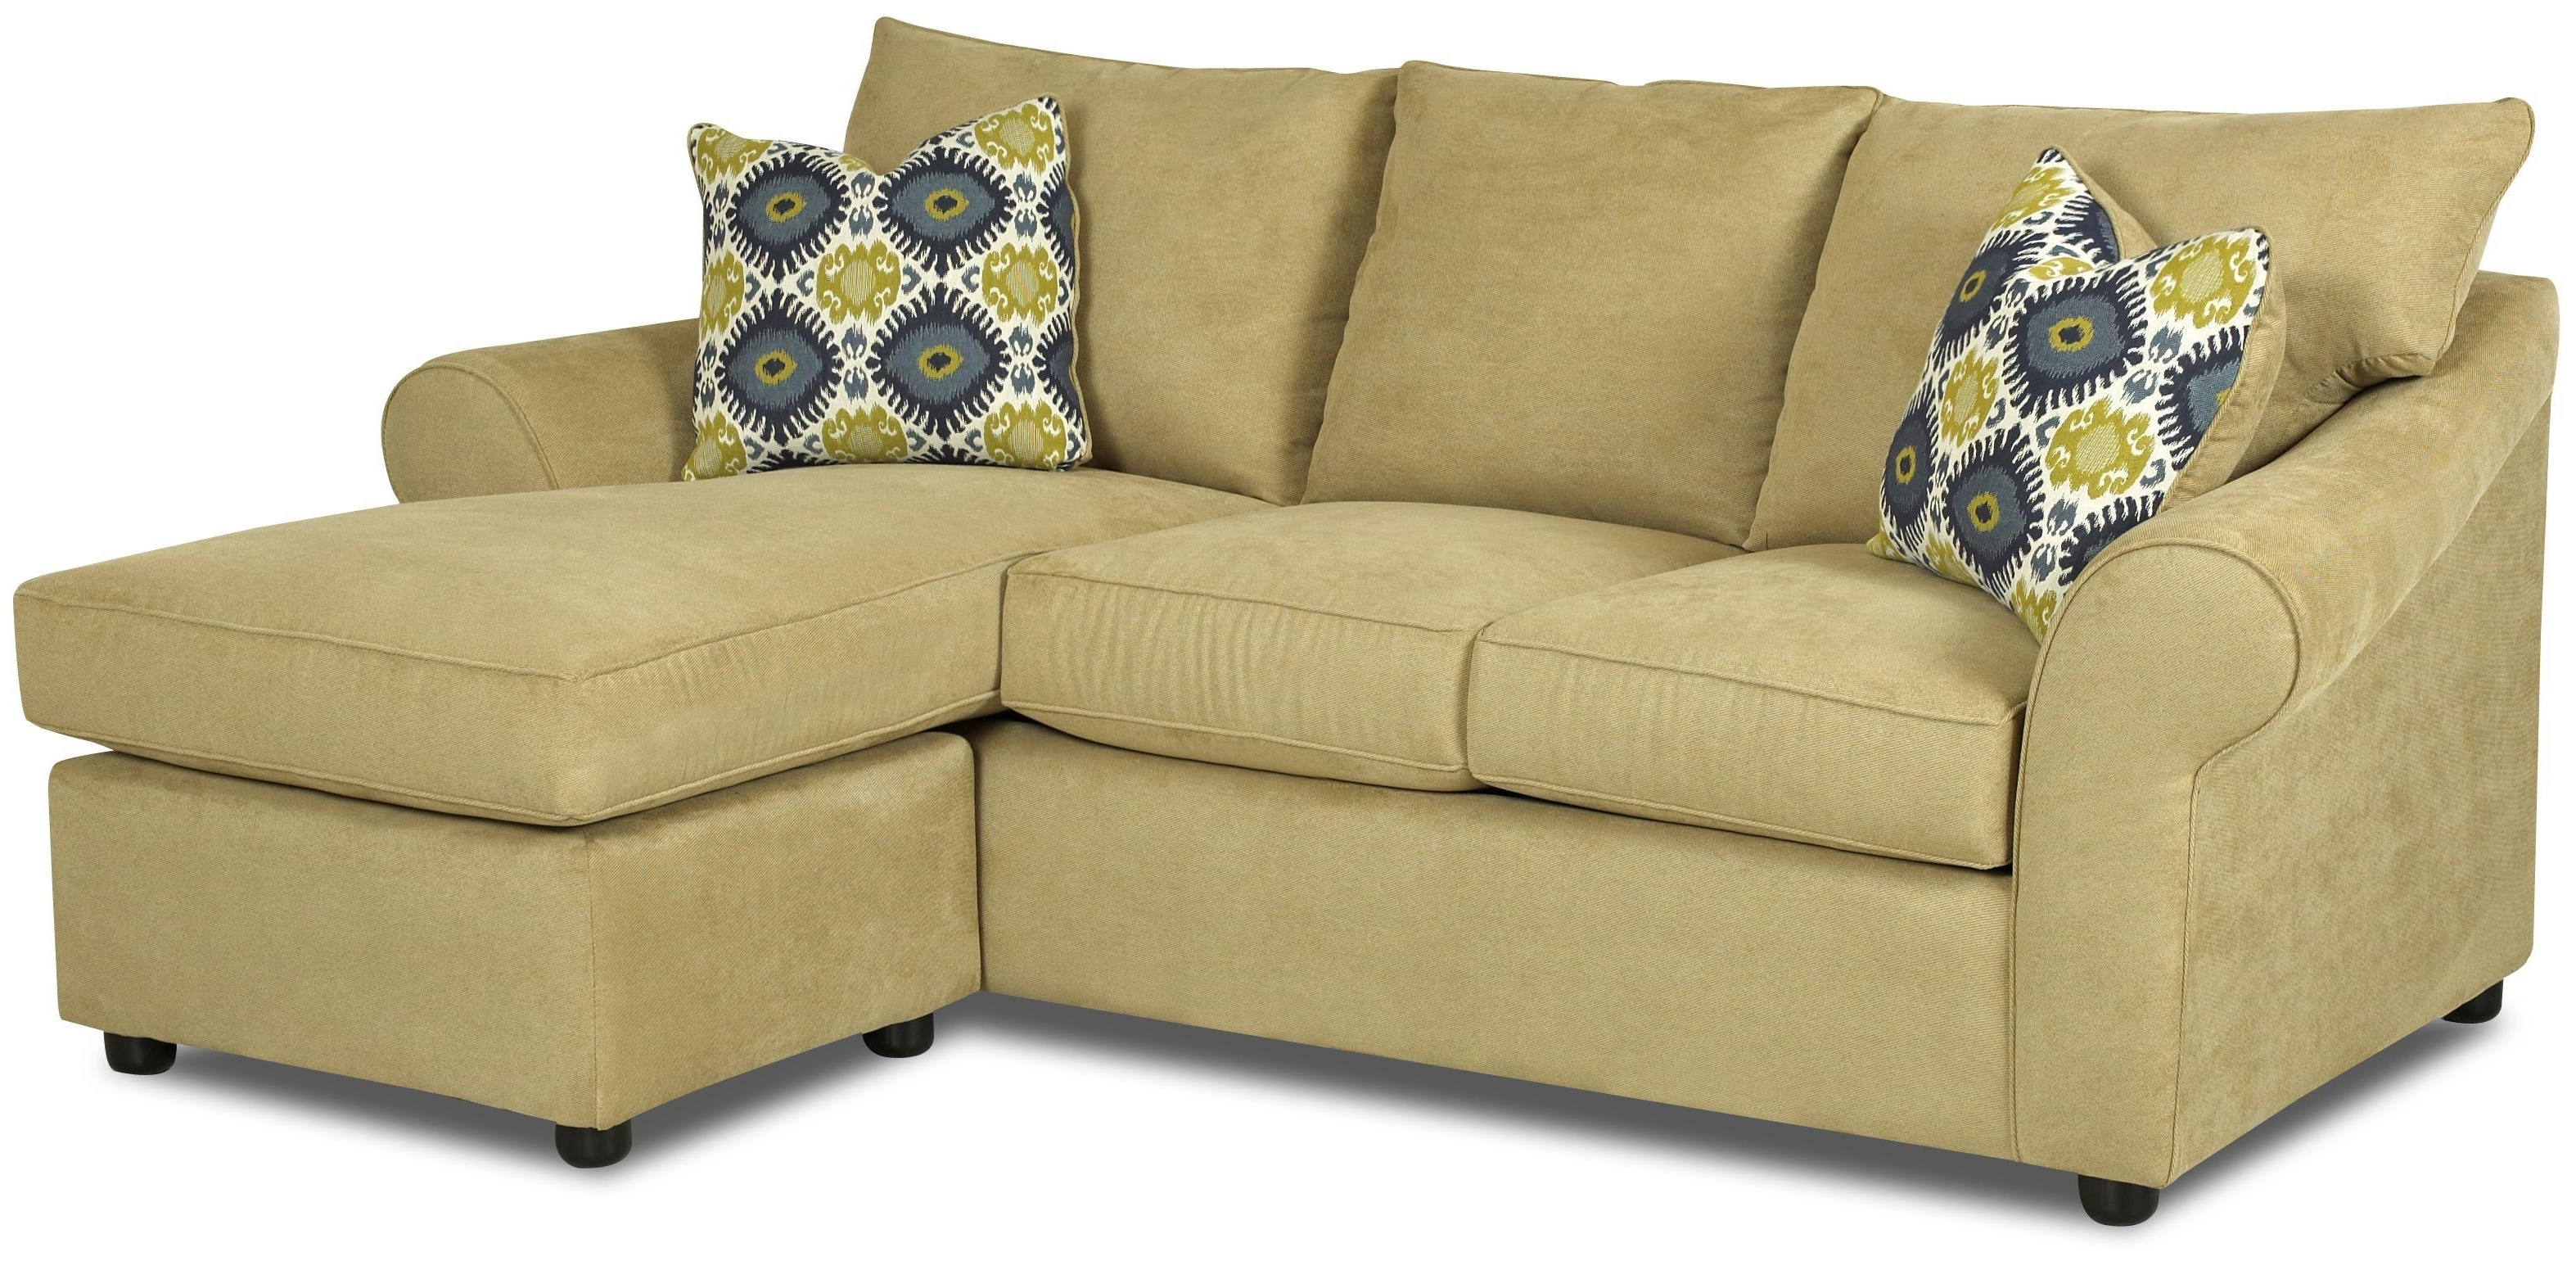 Most Current Chesterfield Chair : Leather Sectional Grey Sleeper Sofa Small Pertaining To Chaise Lounge Sleeper Sofas (View 9 of 15)